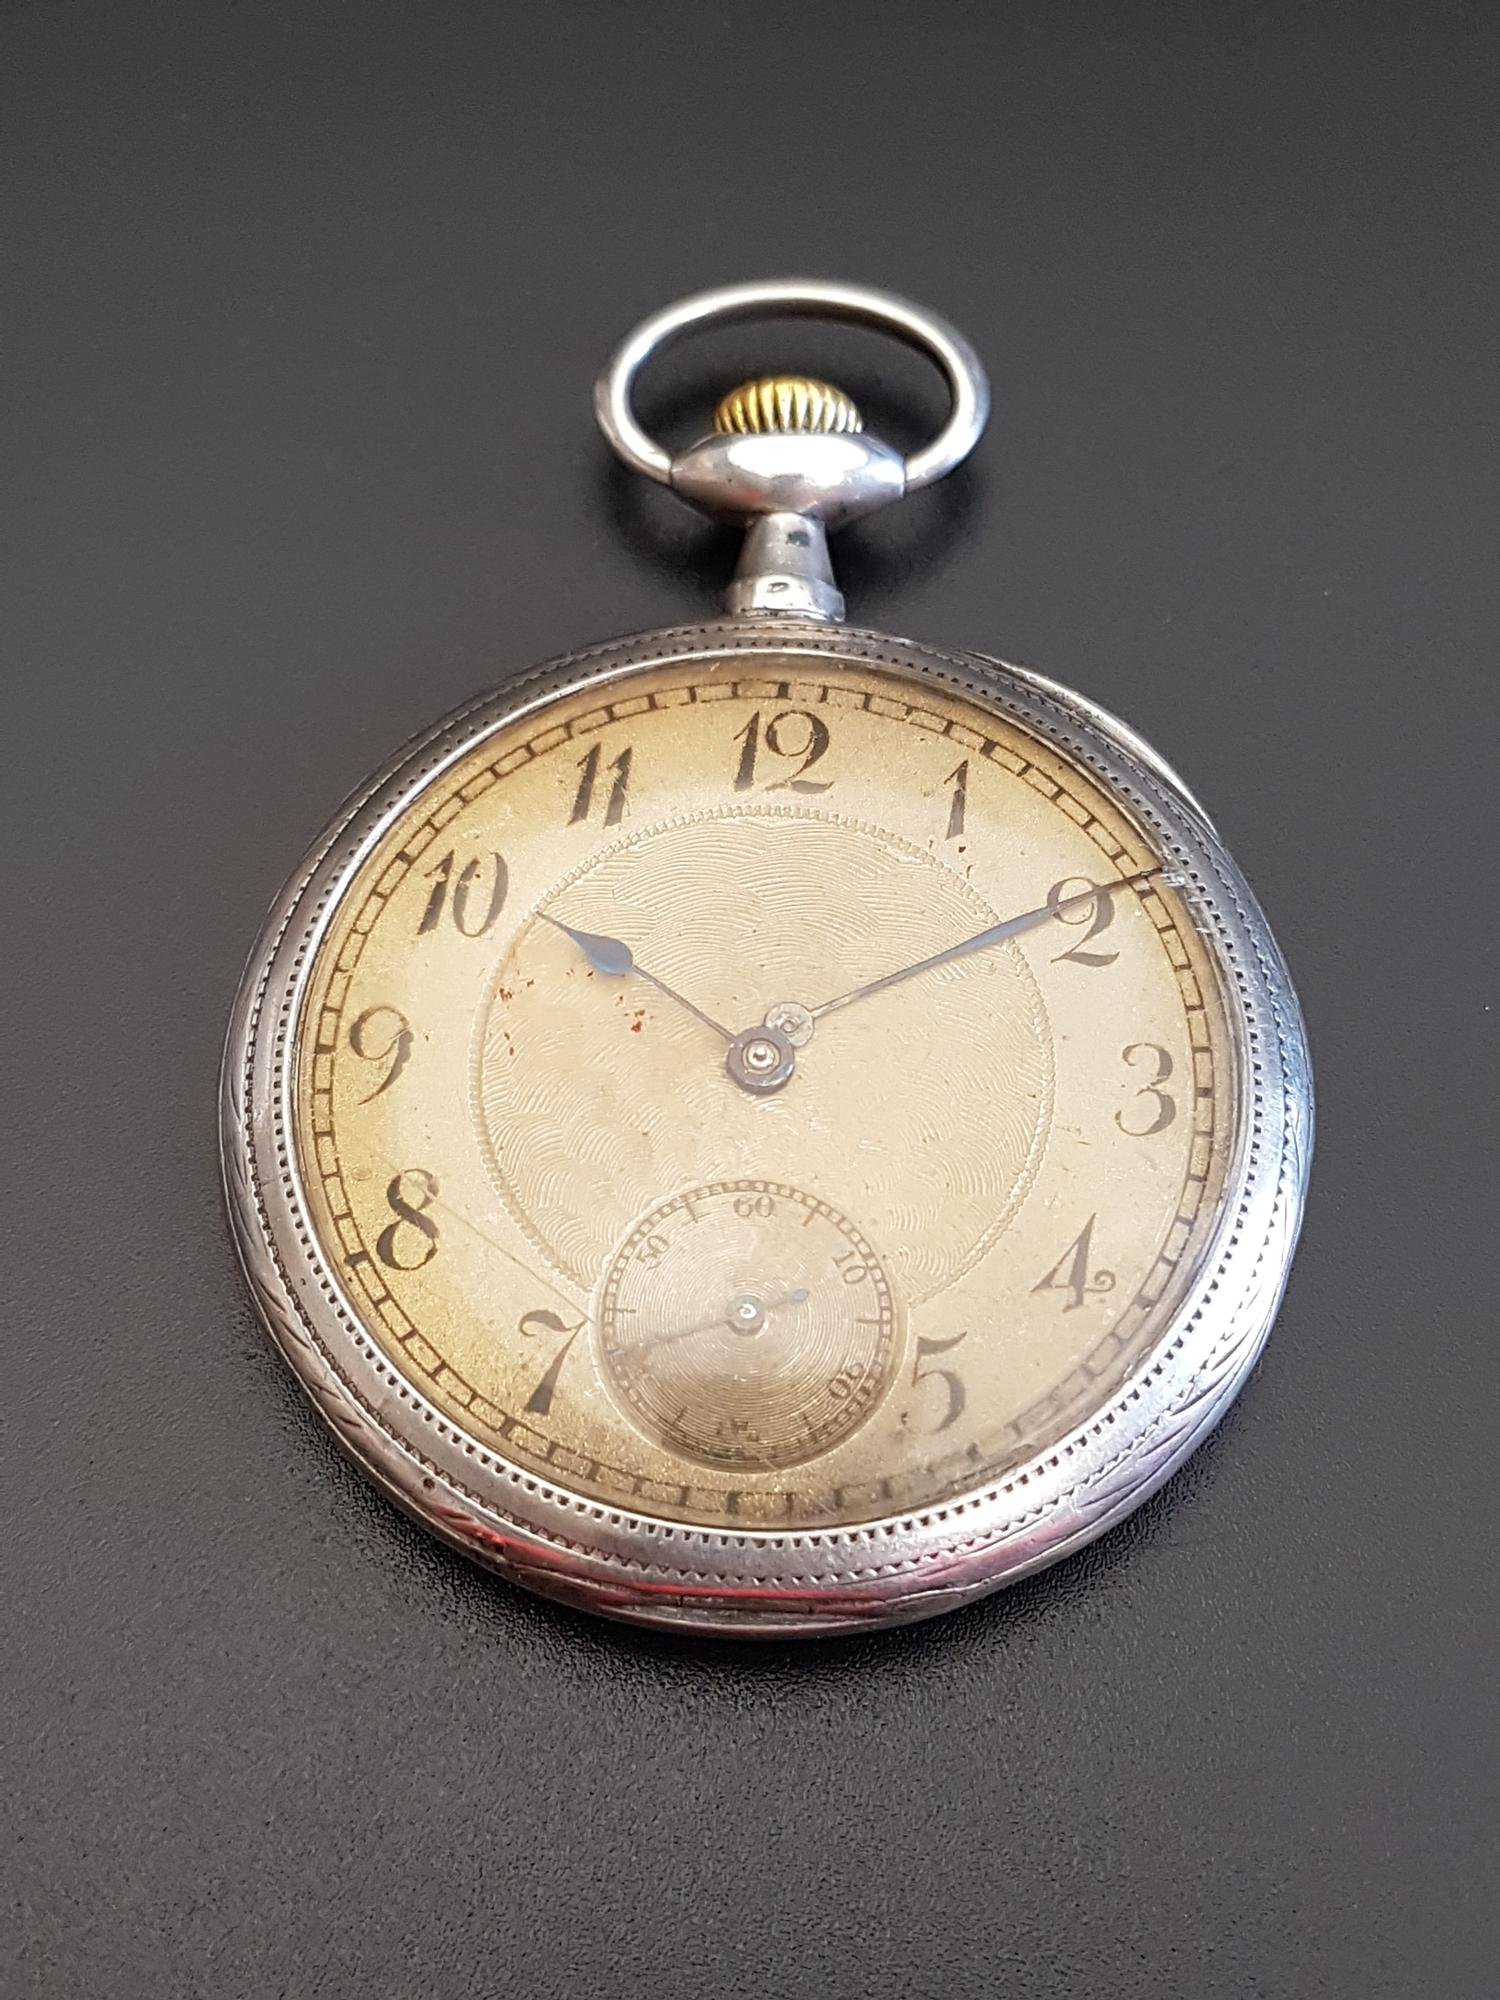 Lot 68 - CONTINENTAL SILVER CASED POCKET WATCH the gilt dial with Arabic numerals, subsidiary seconds dial